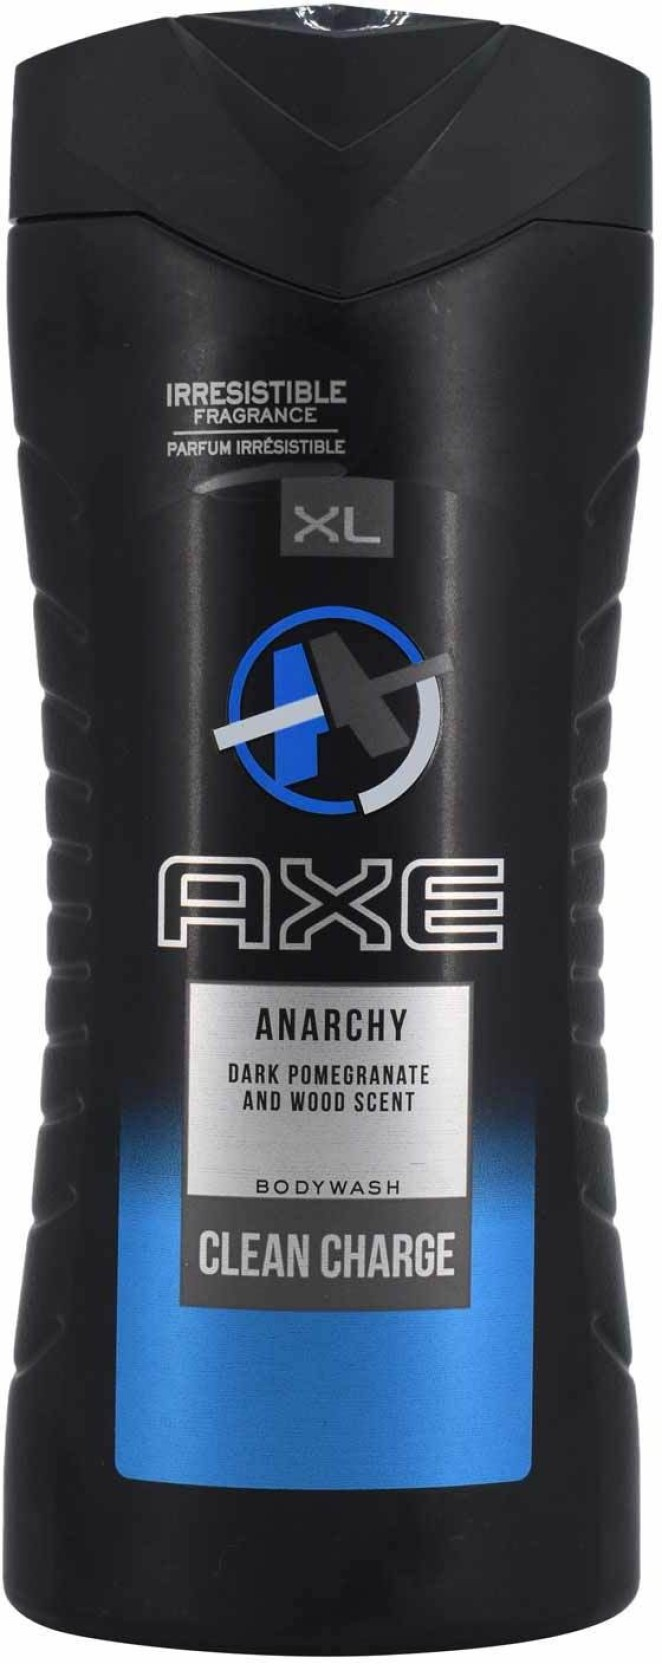 Axe Anarchy Body Wash Clean Charge 400ml Buy St Ives Sea Salt Ampamp Pacific Kelp Exfoliating Add To Cart